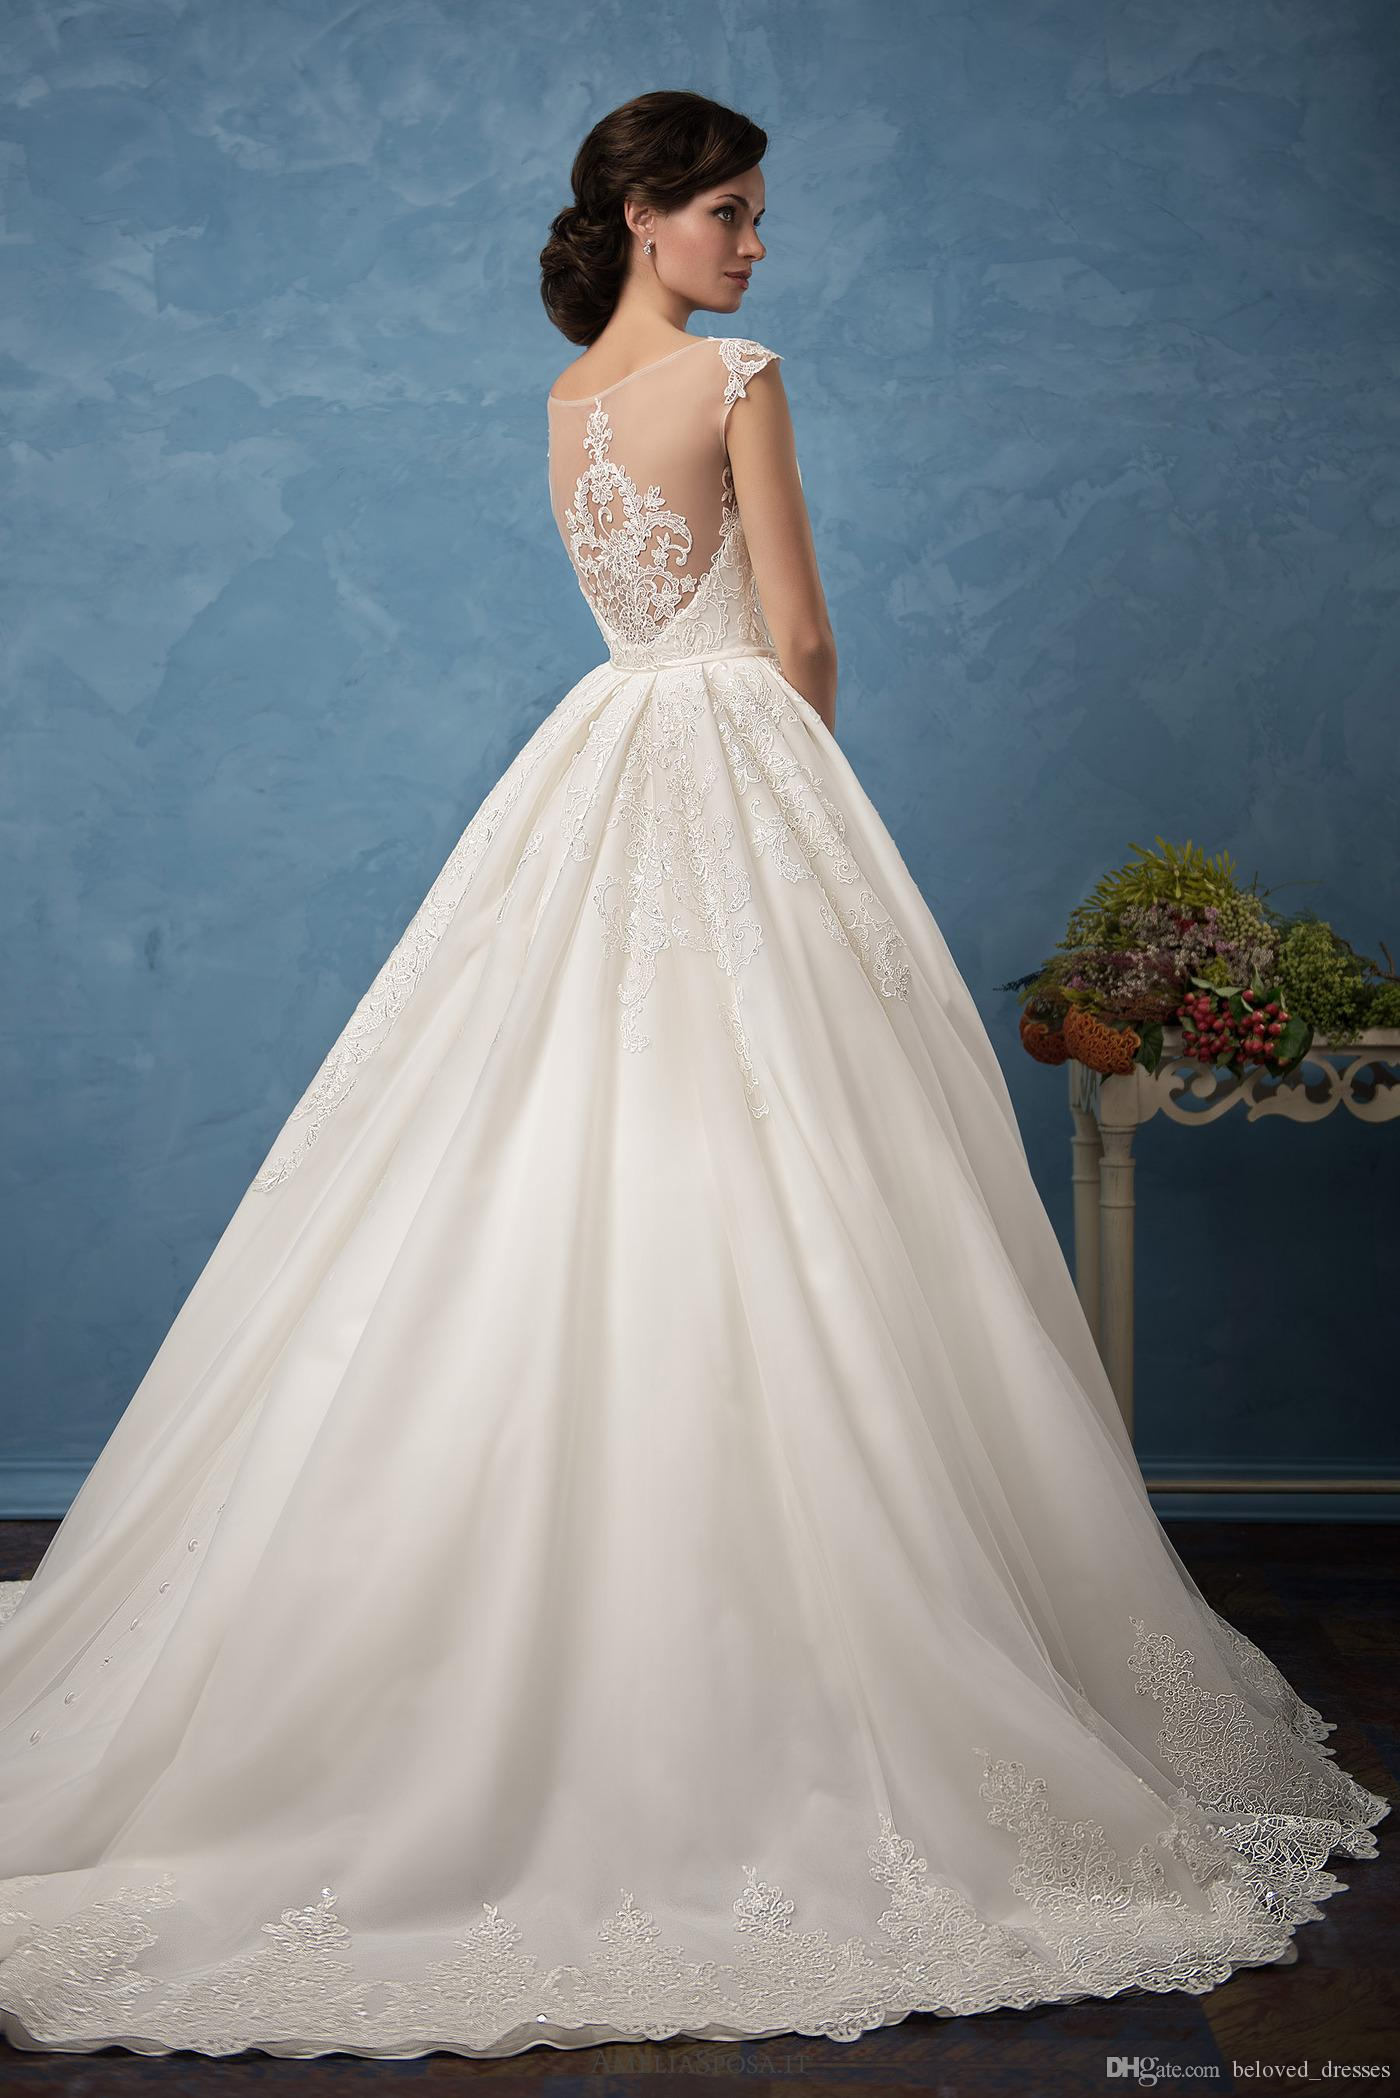 2018 Overskirts Wedding Dress Amelia Sposa Cecilia Lace Ball Gown ...